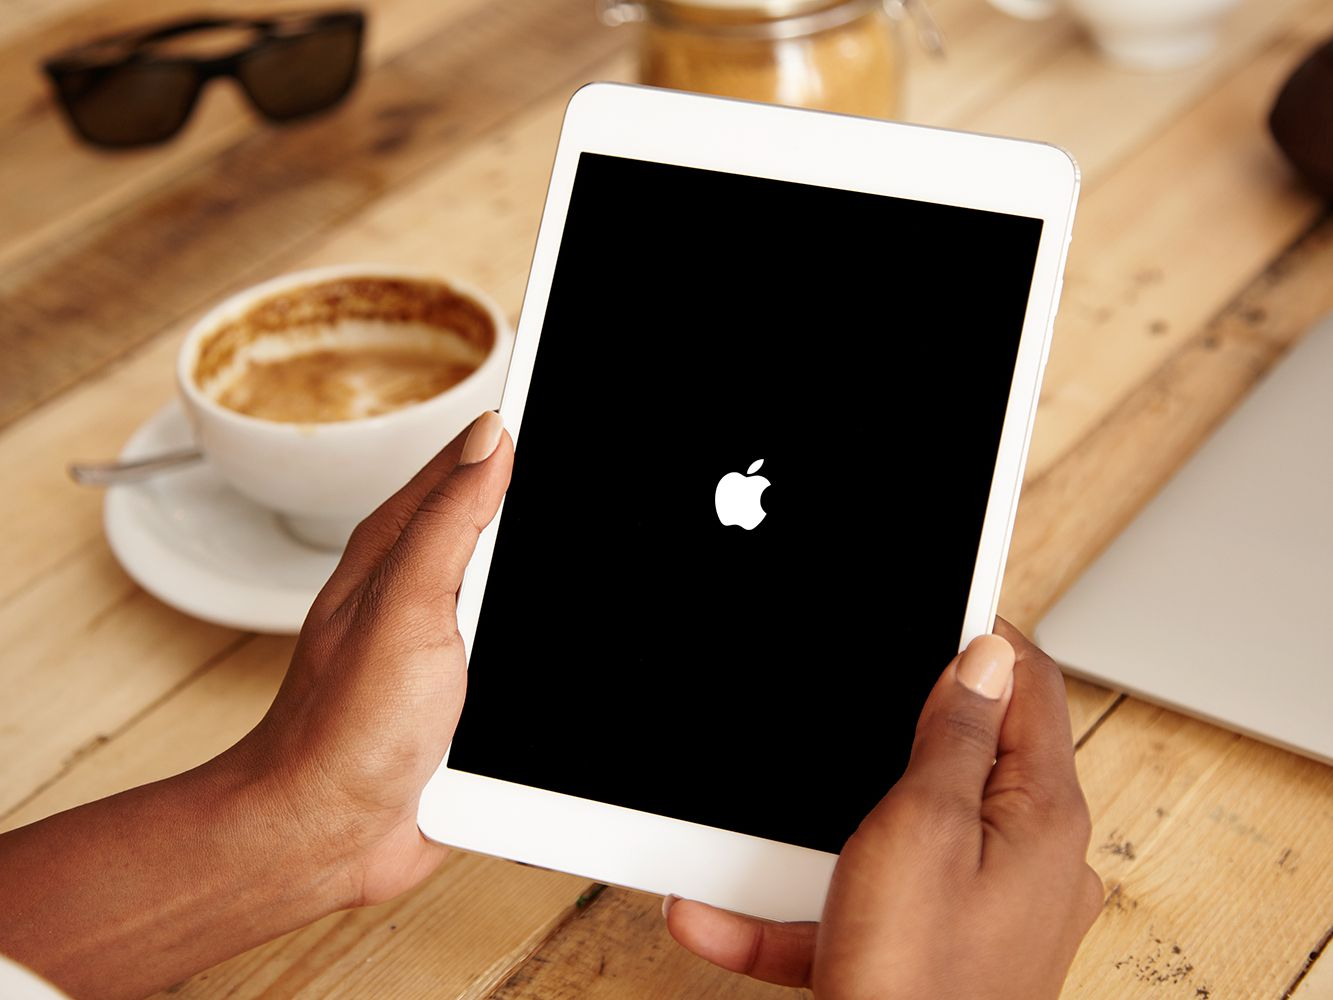 How to Restart an iPad (All Models)